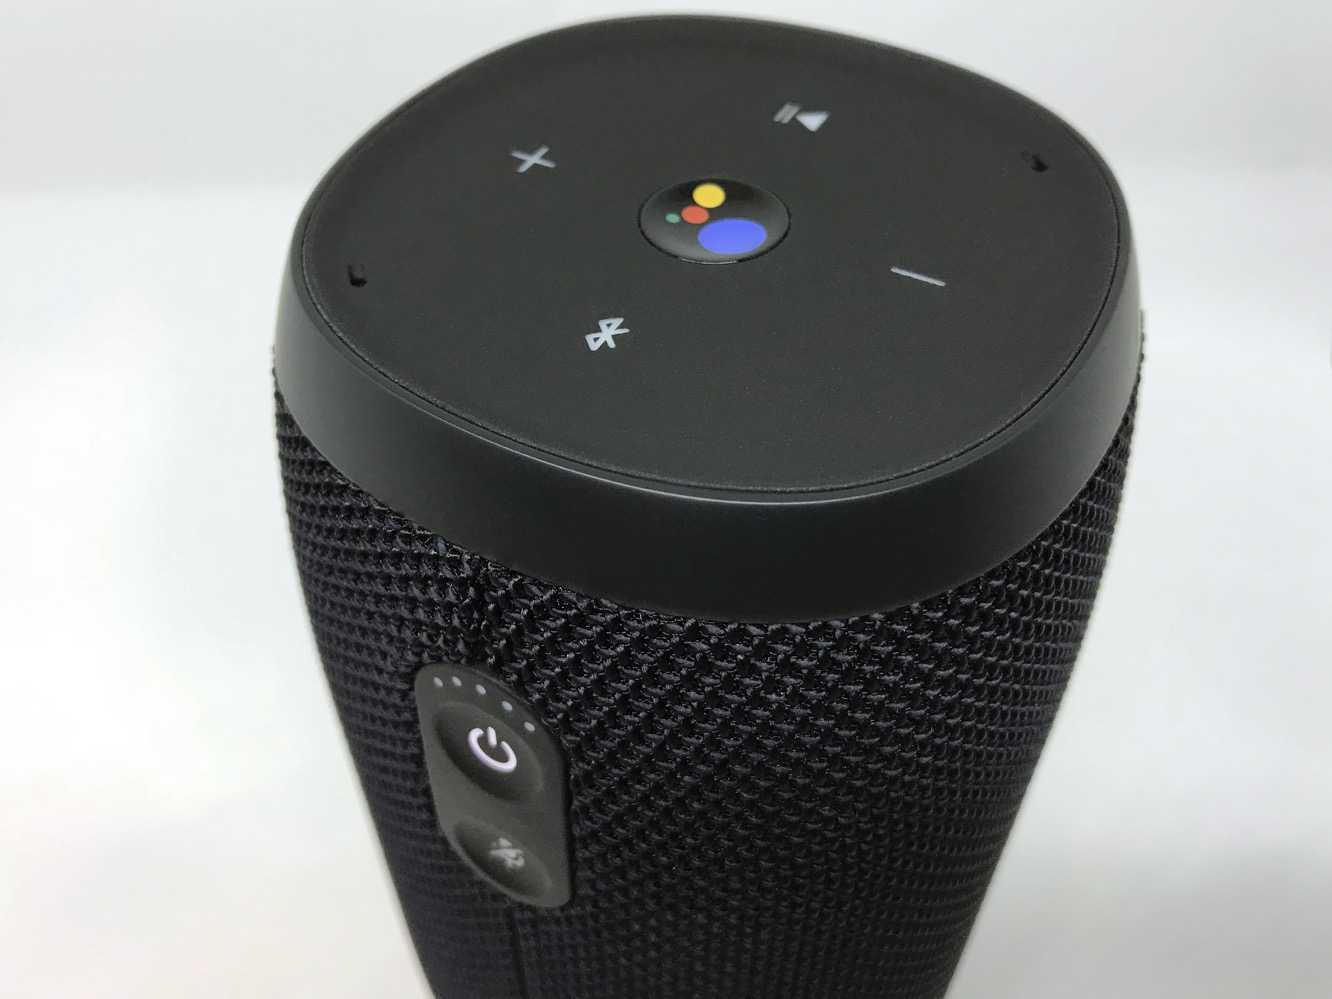 Broadcast your voice to Google speakers around your house with Google Assistant